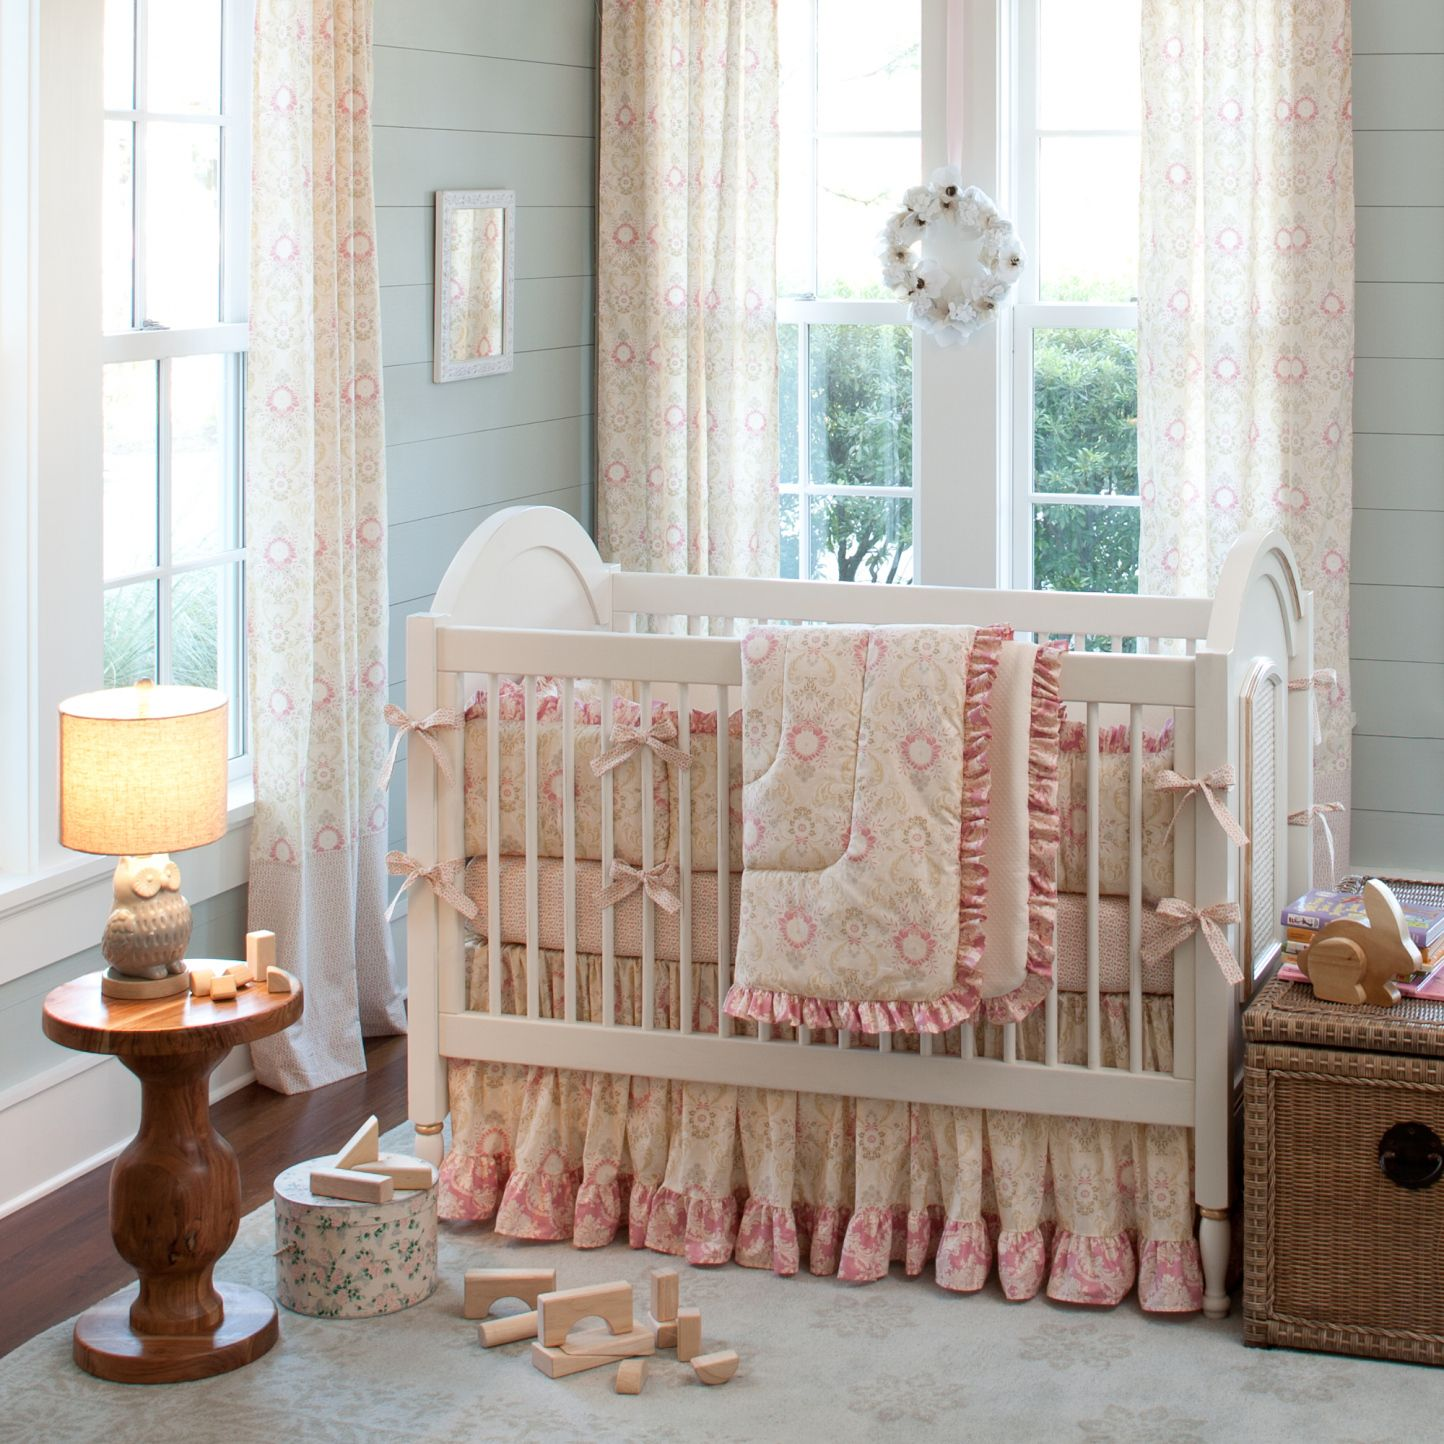 Genial Vintage Style Baby Furniture   Best Paint For Interior Walls Check More At  Http:/